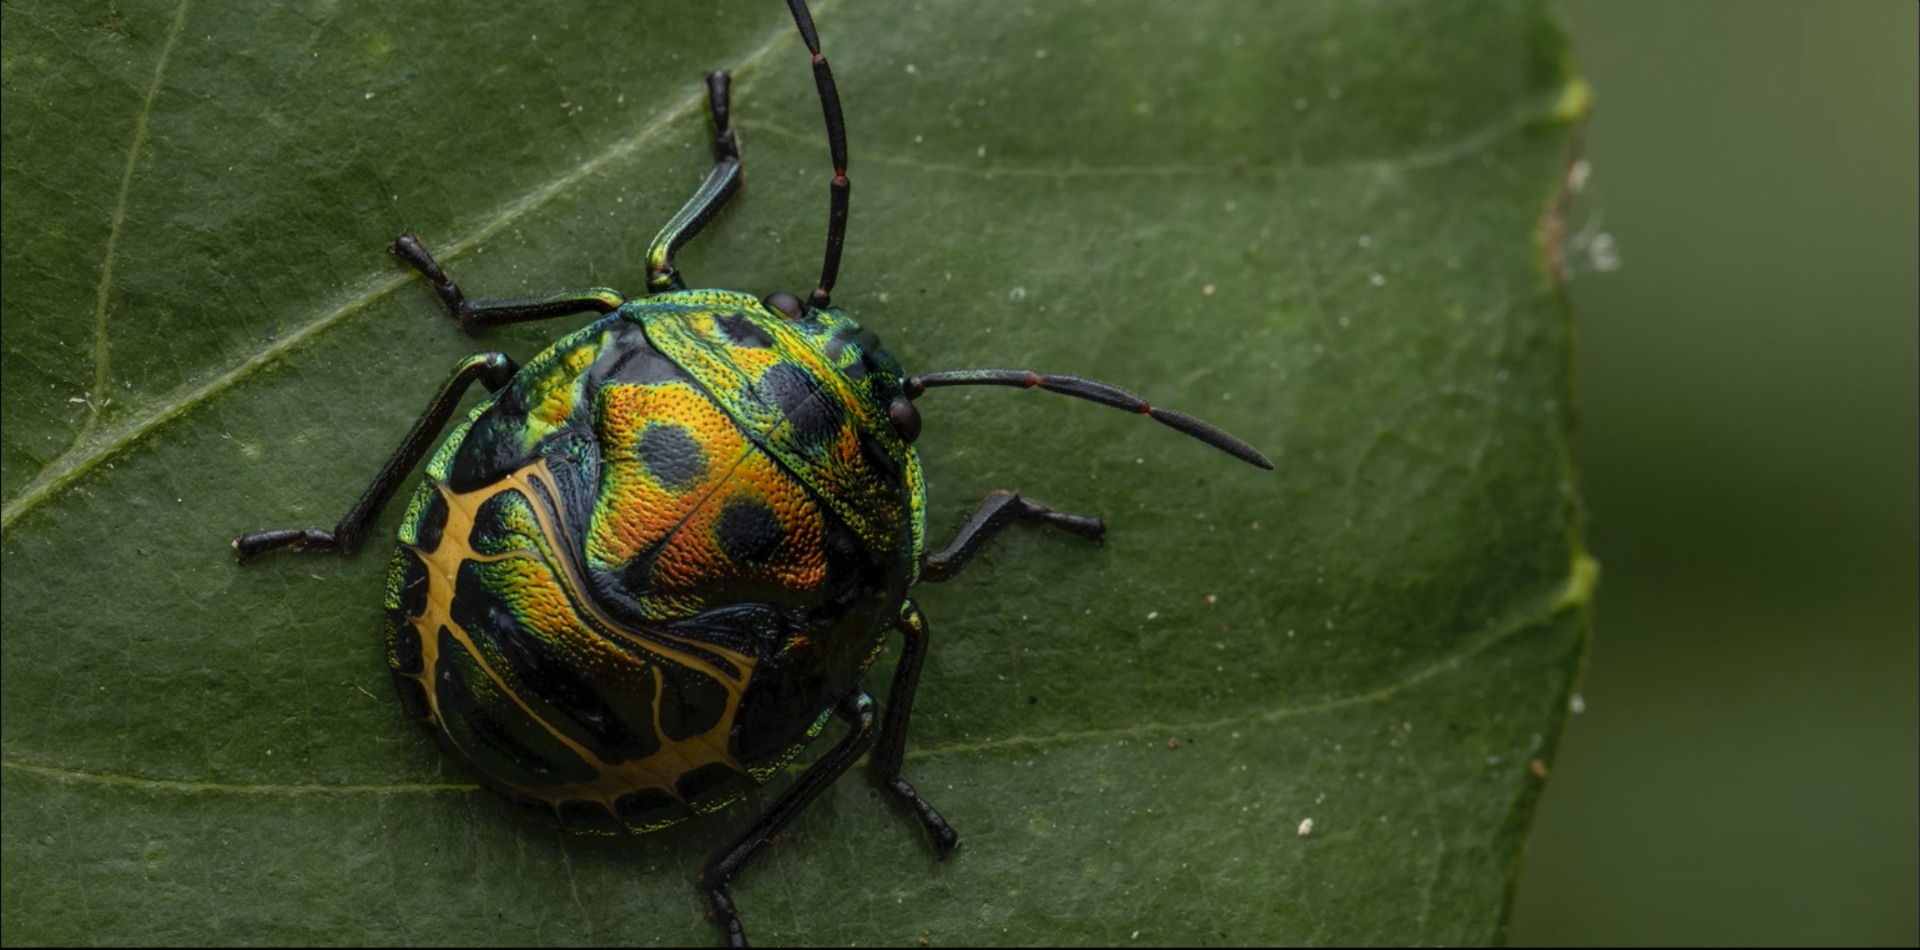 Small green beetle with orange and yellow markings